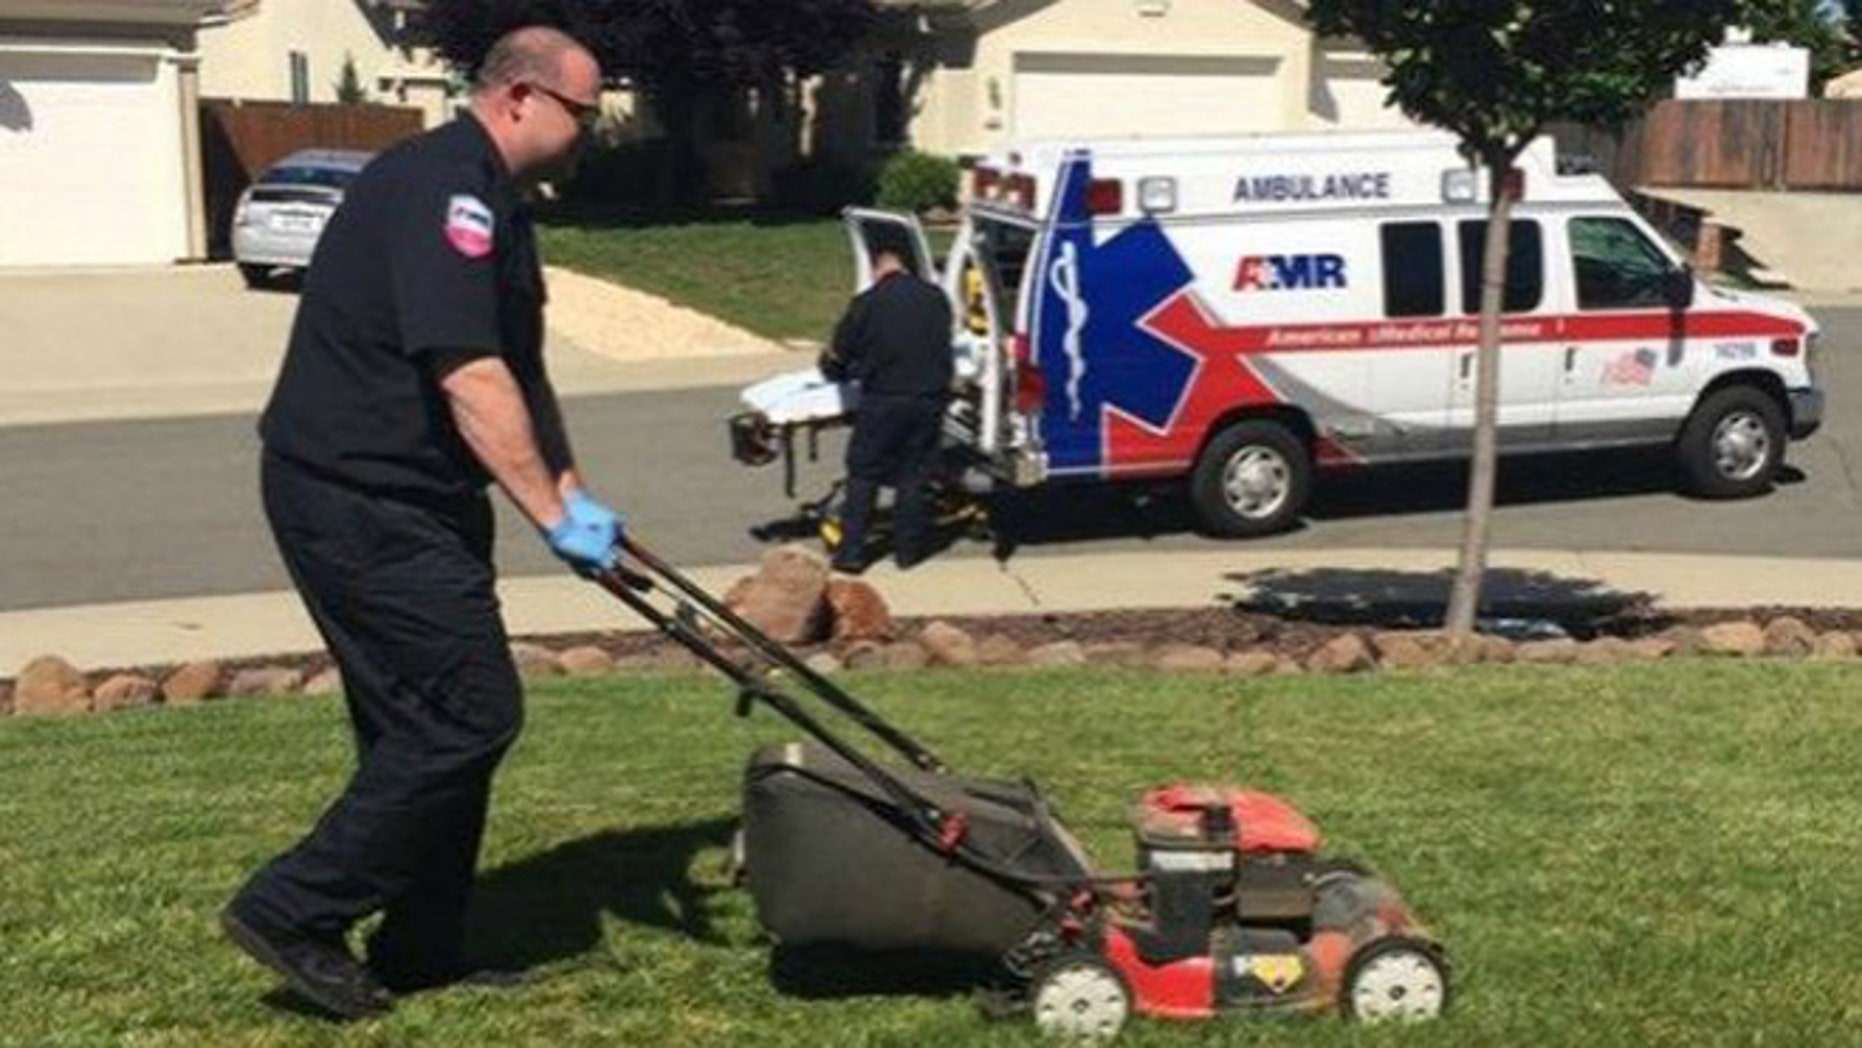 A California EMT worker who responded to an emergency call finished mowing an 86-year-old's yard.